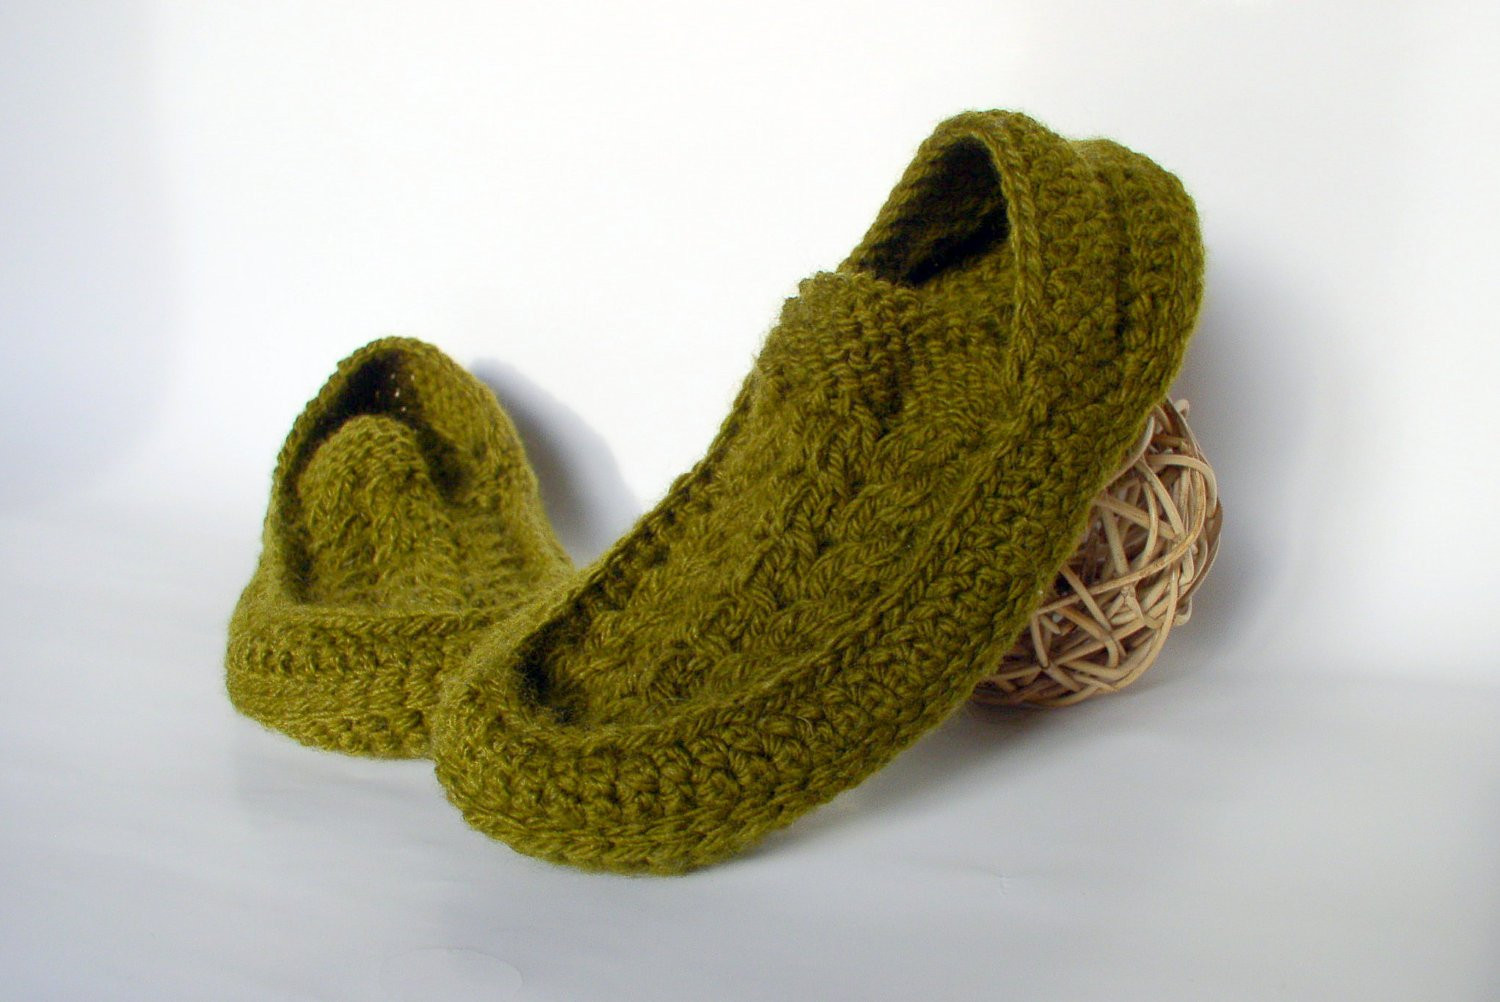 Knitted Slippers Unique Men S Knit Crochet socks Slippers with Cables Motifs Hand Of New 42 Photos Knitted Slippers